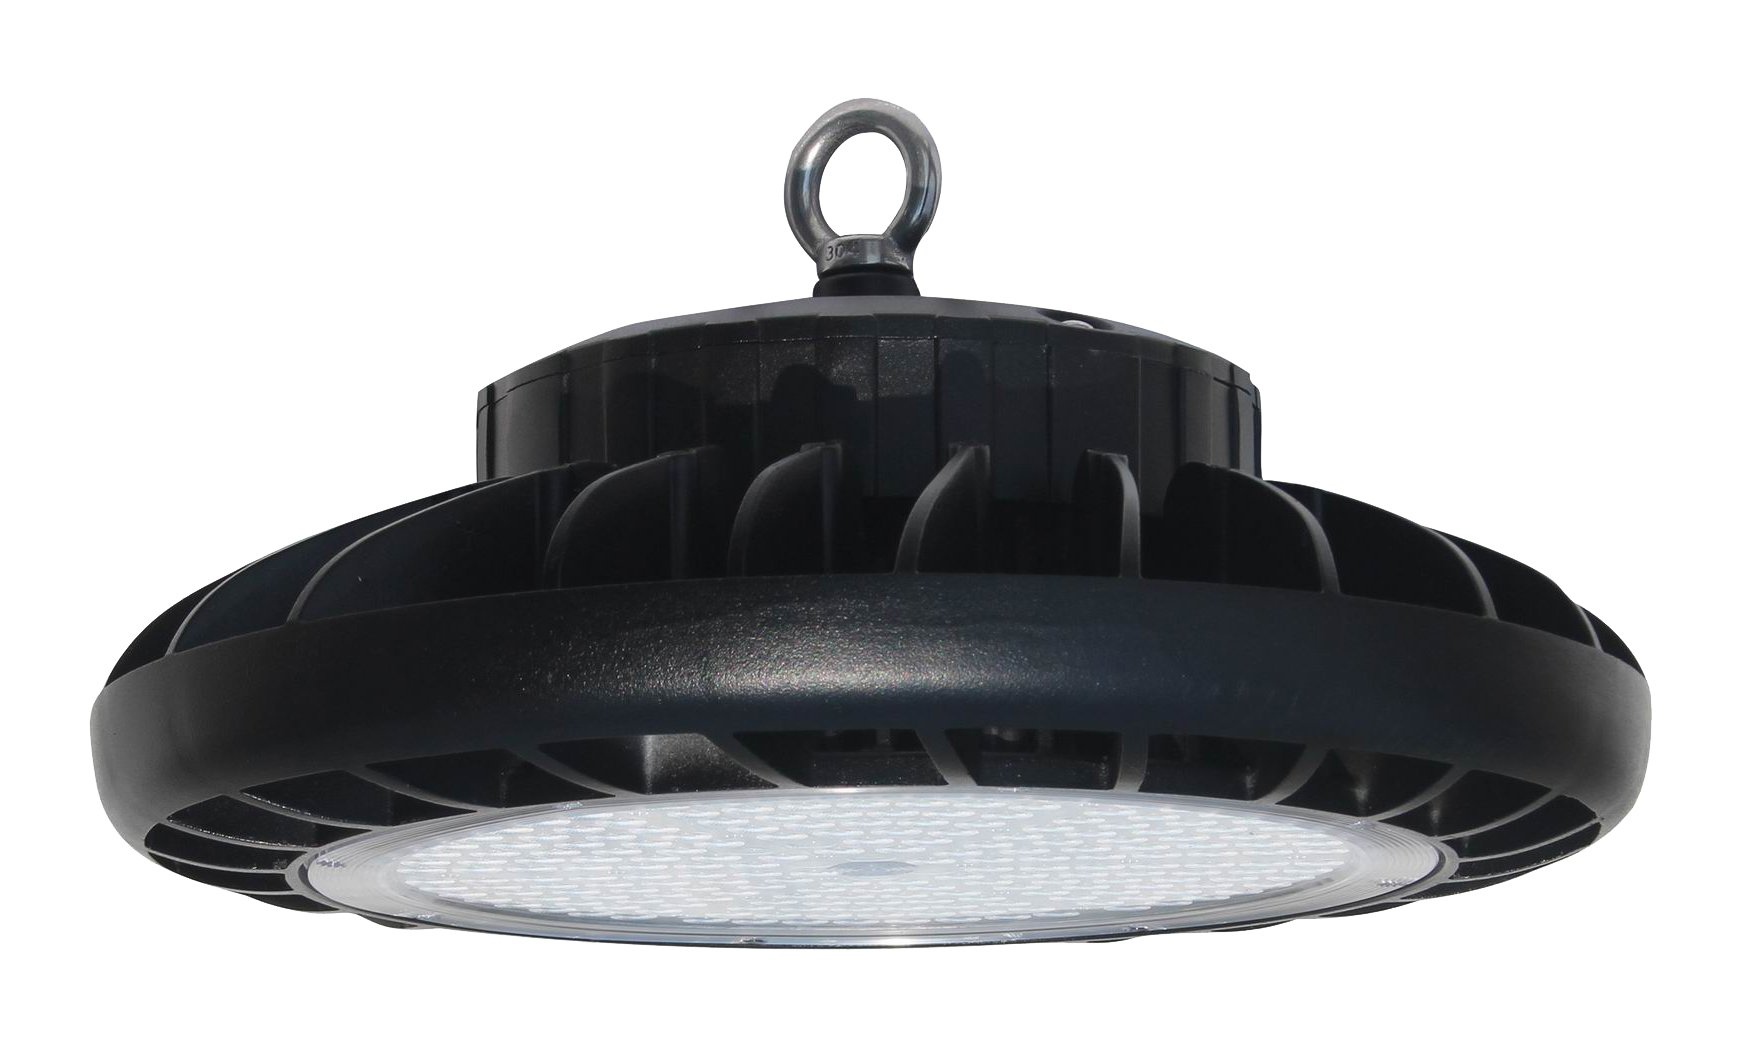 UFO 100W Round LED High Bay Light UL cUL DLC (5000 Kelvin) 5 Year Warranty - Great for Shops, Warehouses and Buildings With Tall Ceilings by Cost Less Lighting